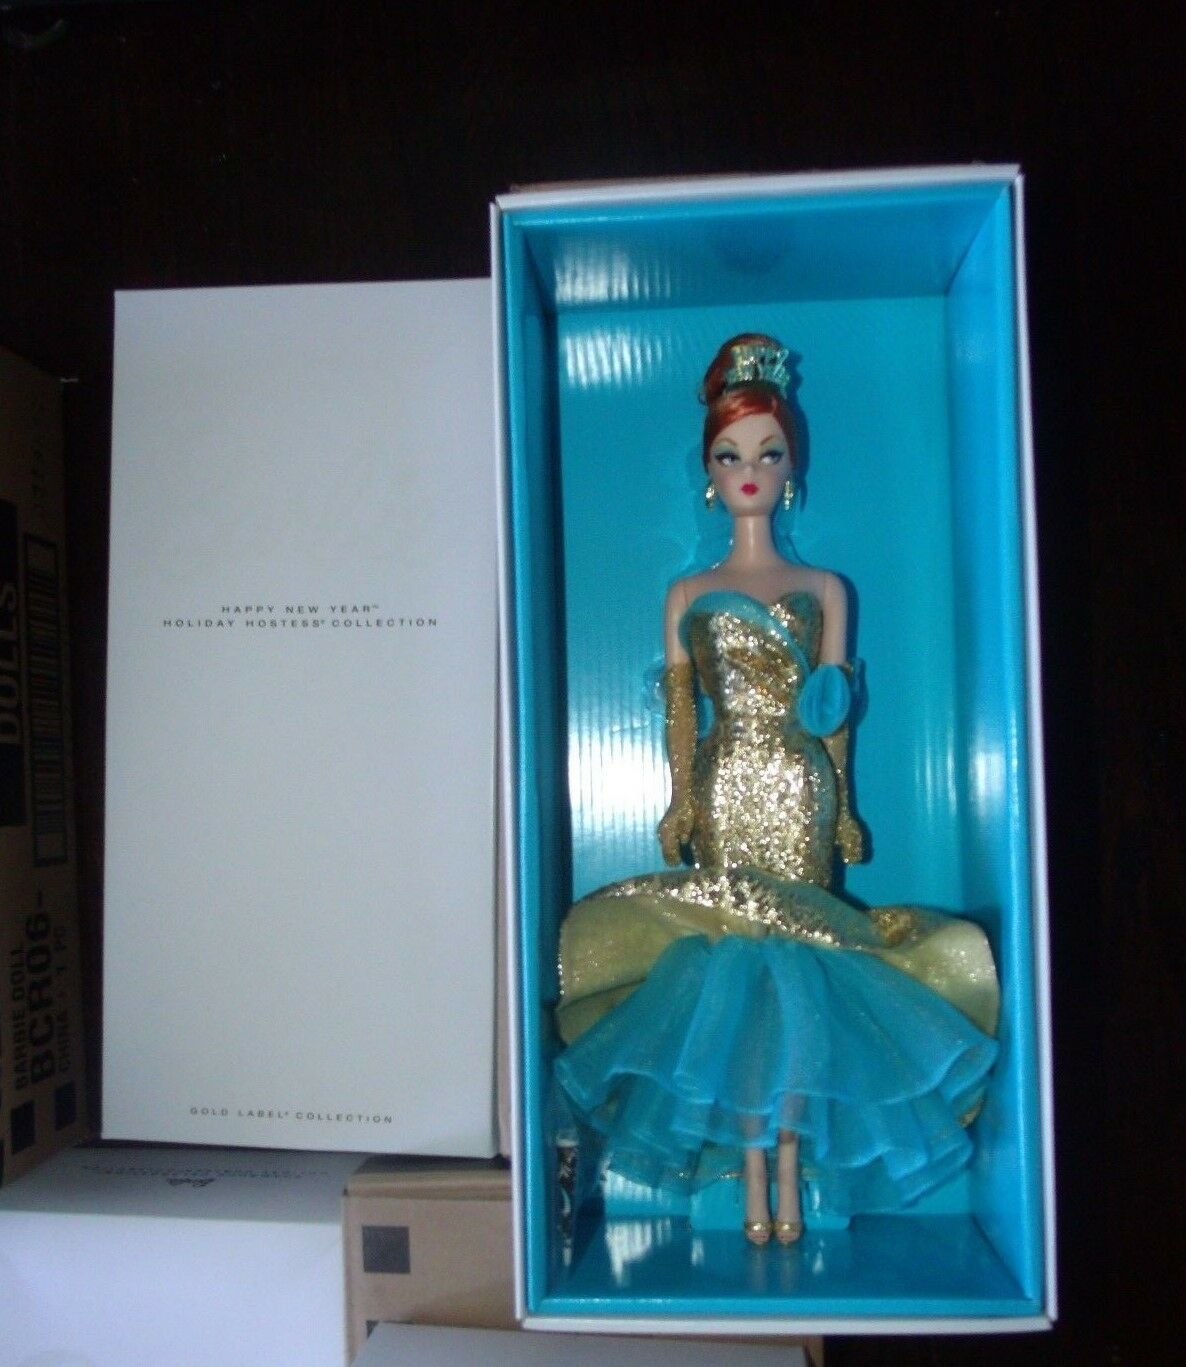 Happy New Year Holiday Hostess Collection Silkstone Barbie 2013 W Shipper